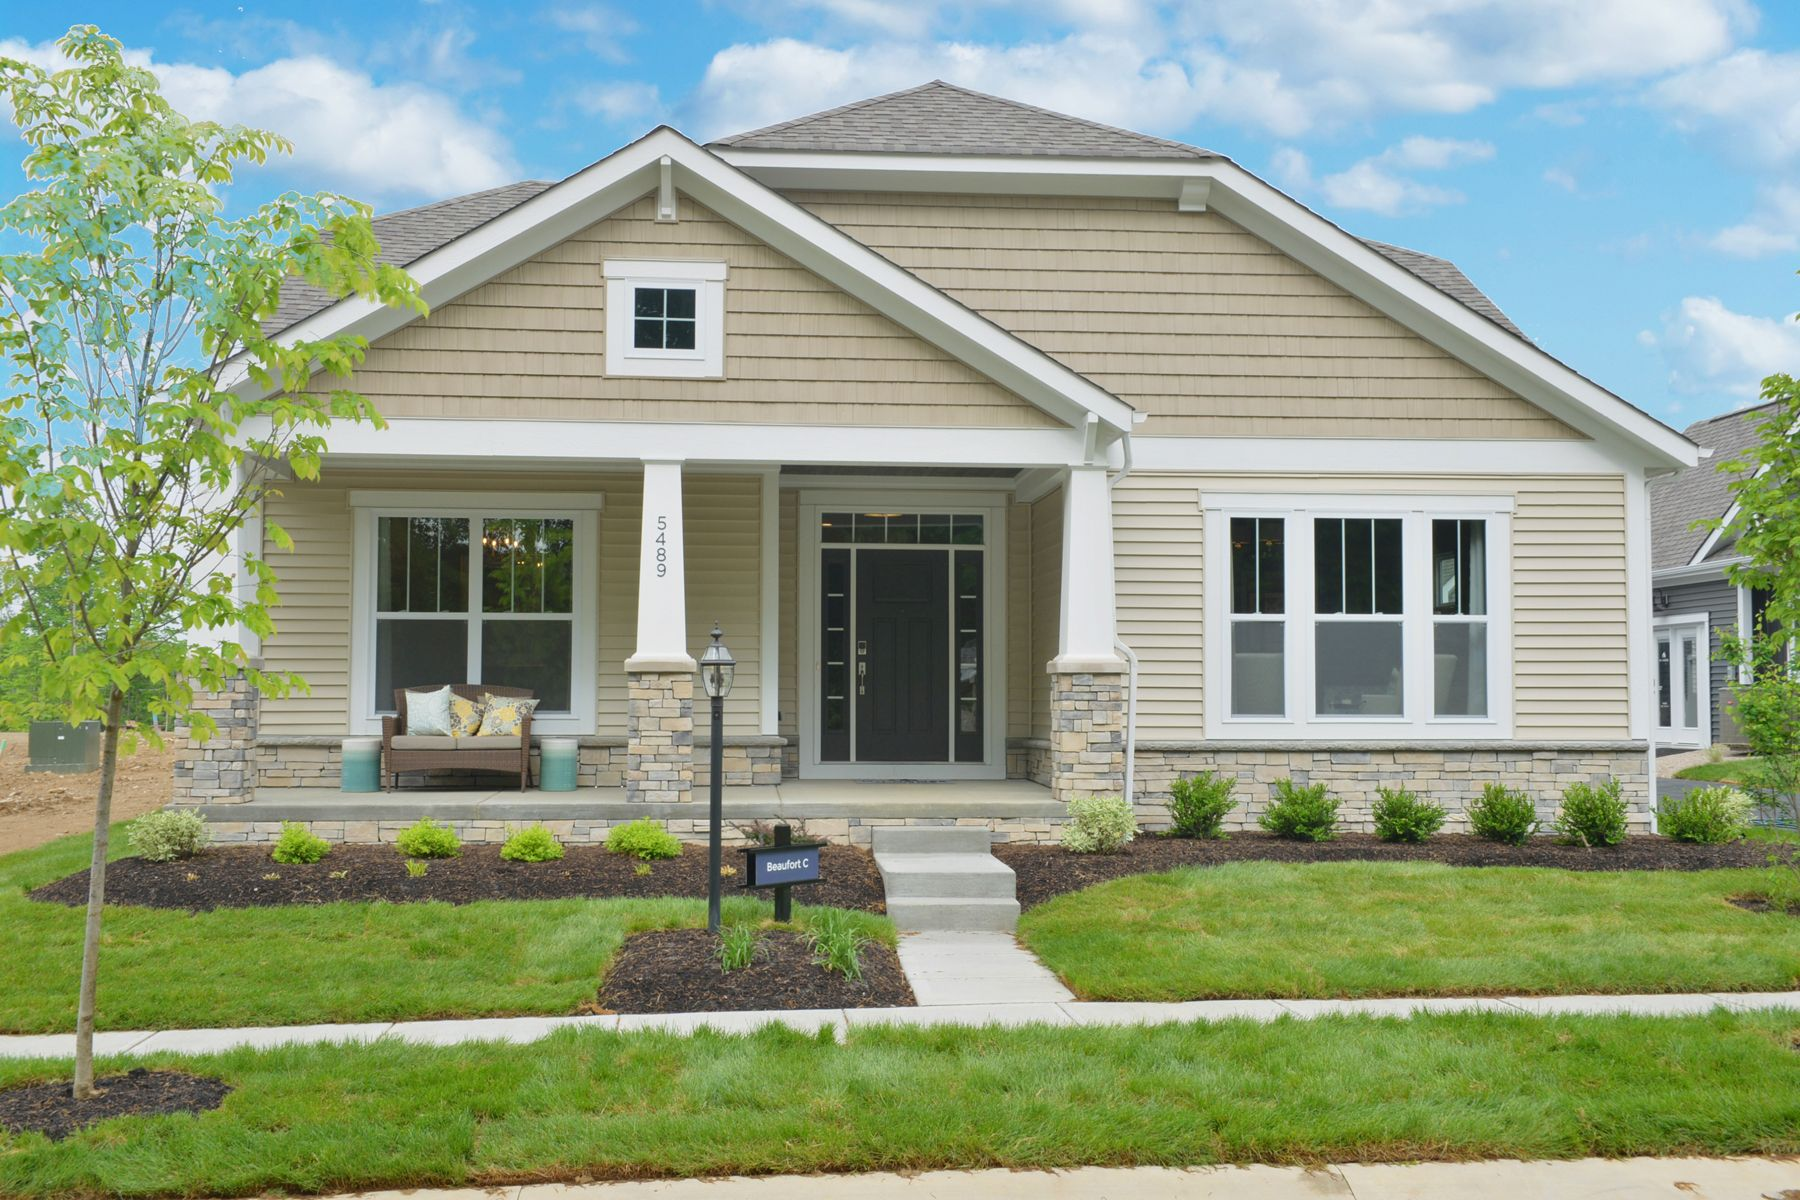 New Homes in Blacklick, OH | 242 Communities | NewHomeSource